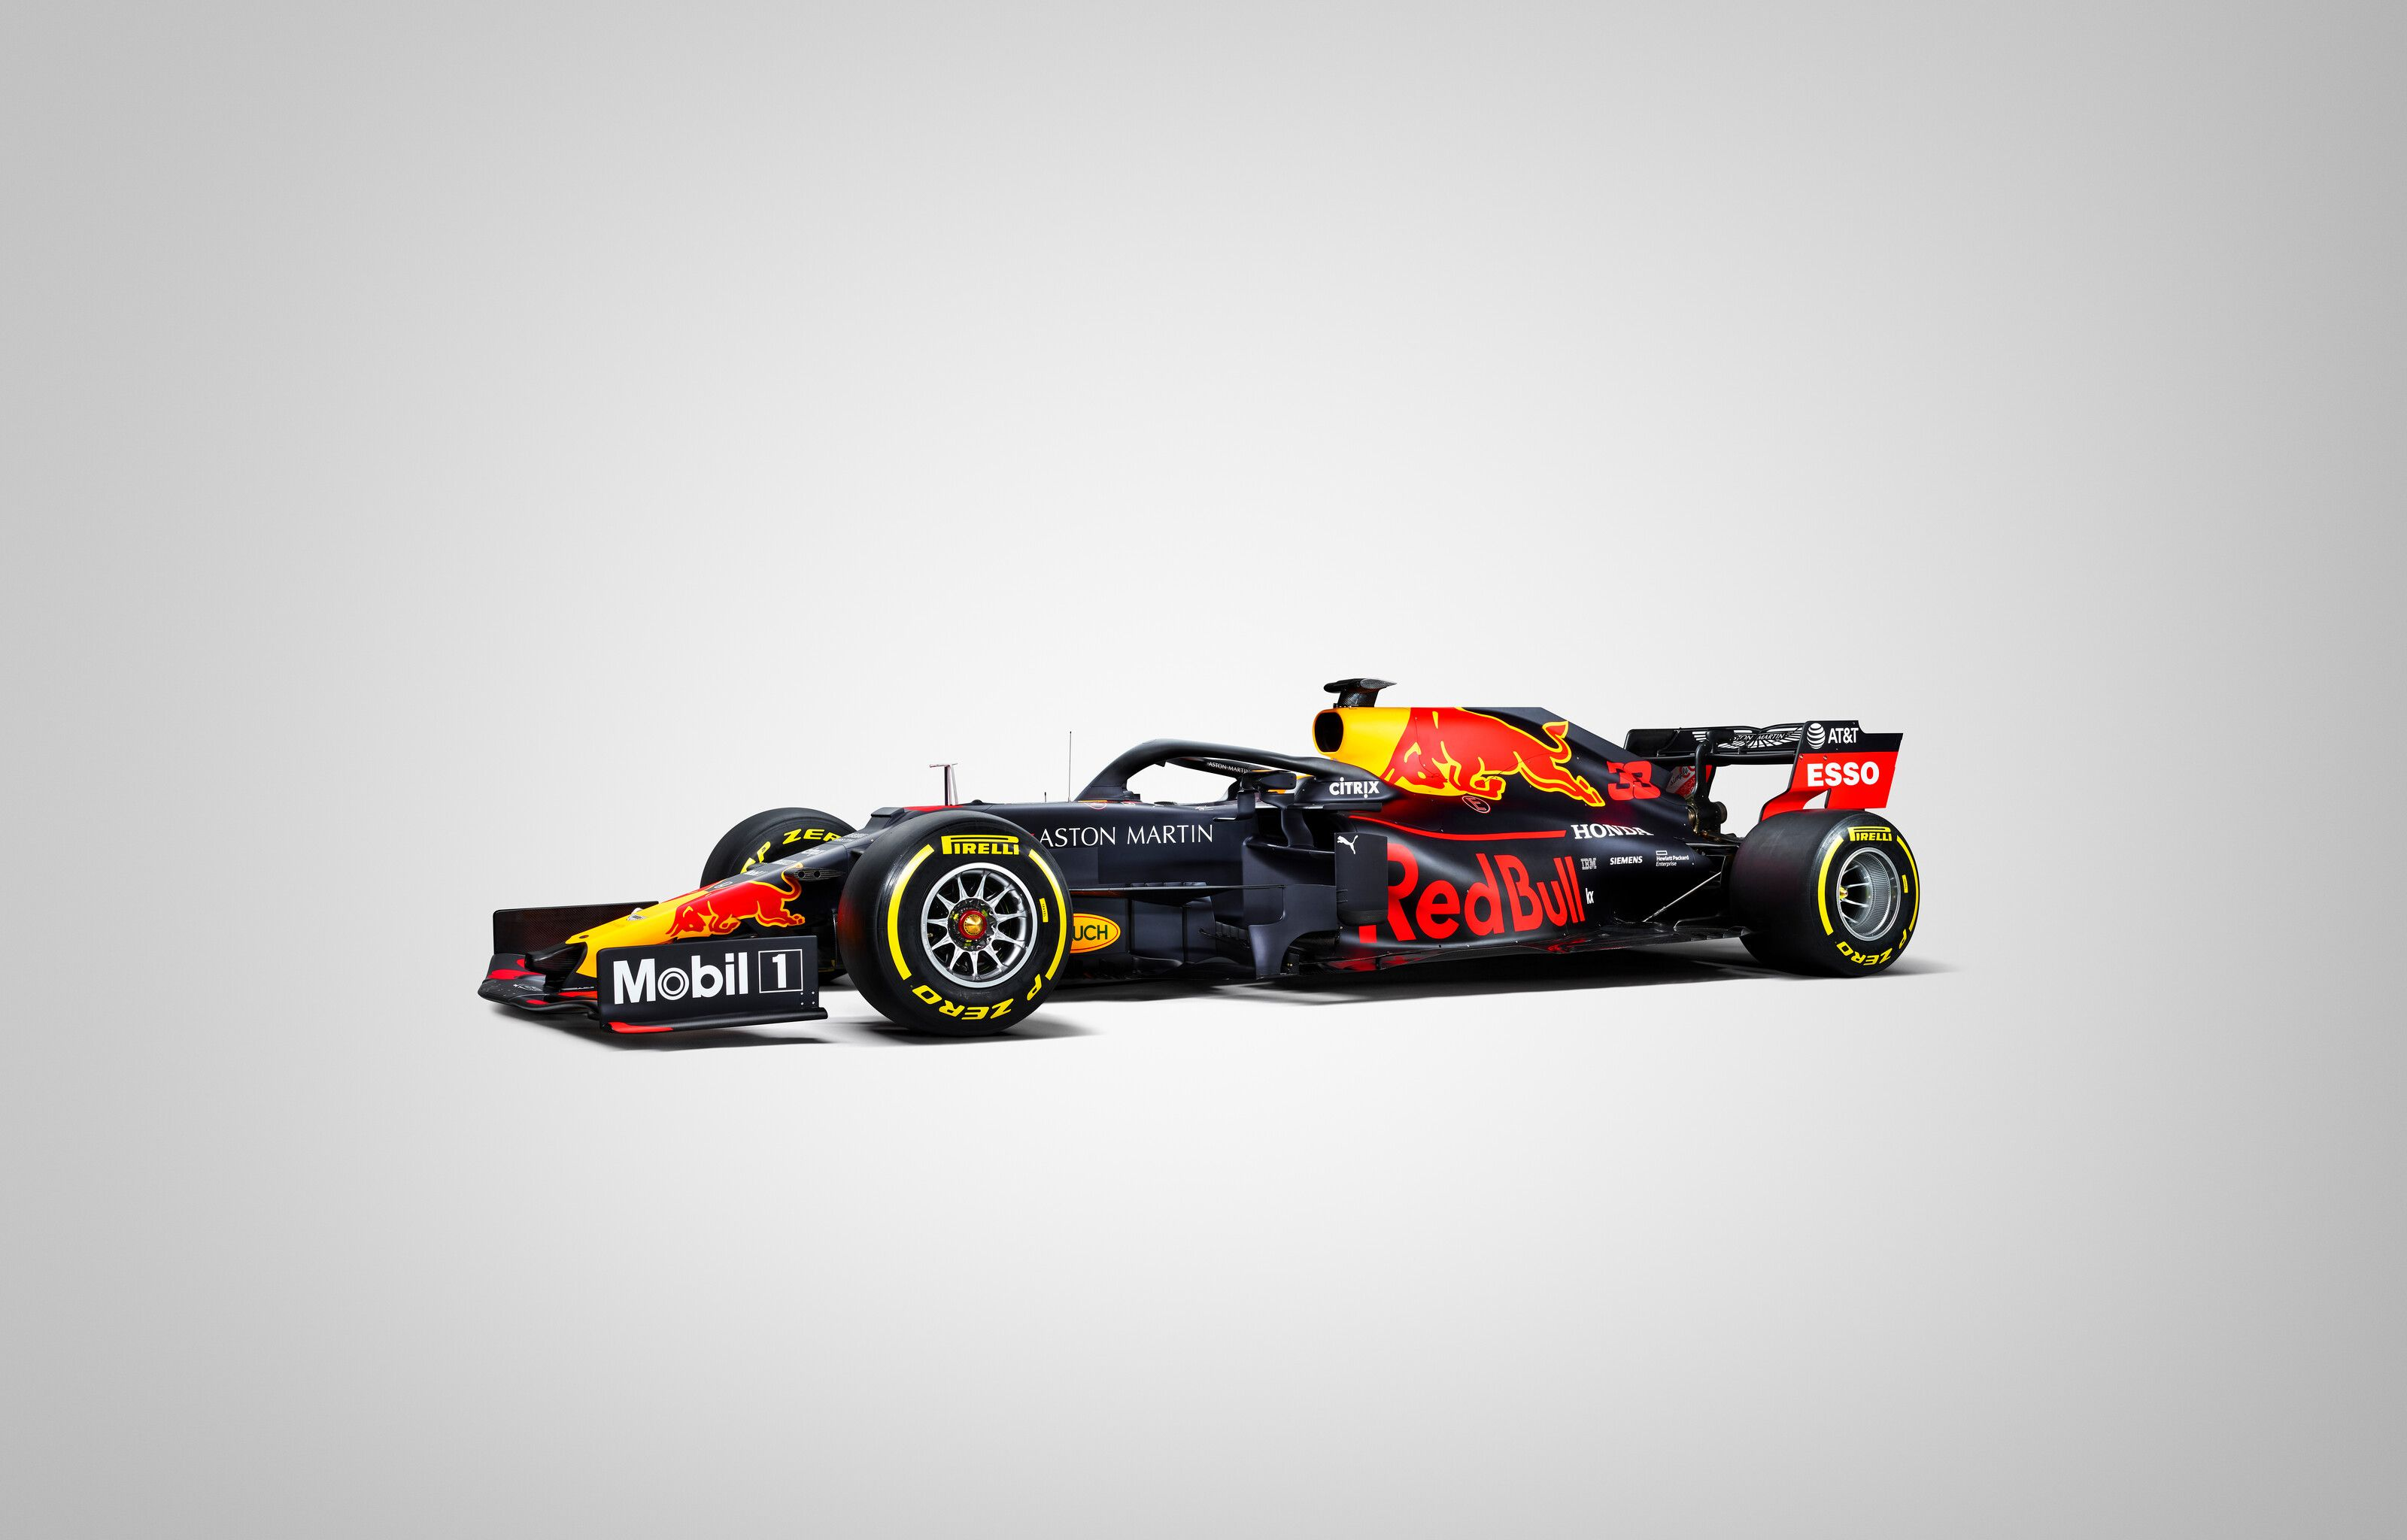 Red Bull Racing 2019 F1 livery